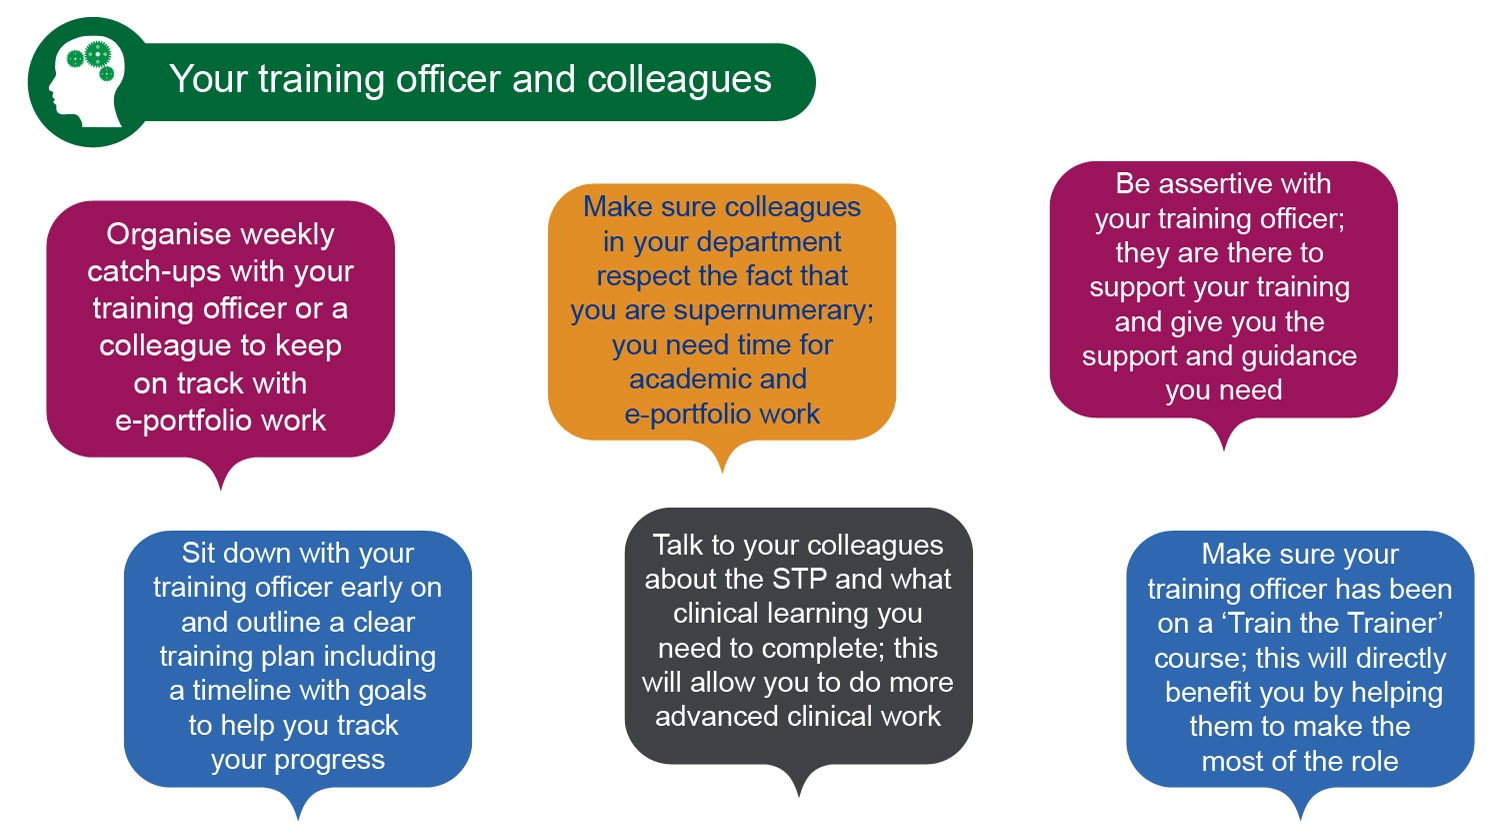 Graphic showing quotes from STP trainees about their training officer and colleagues